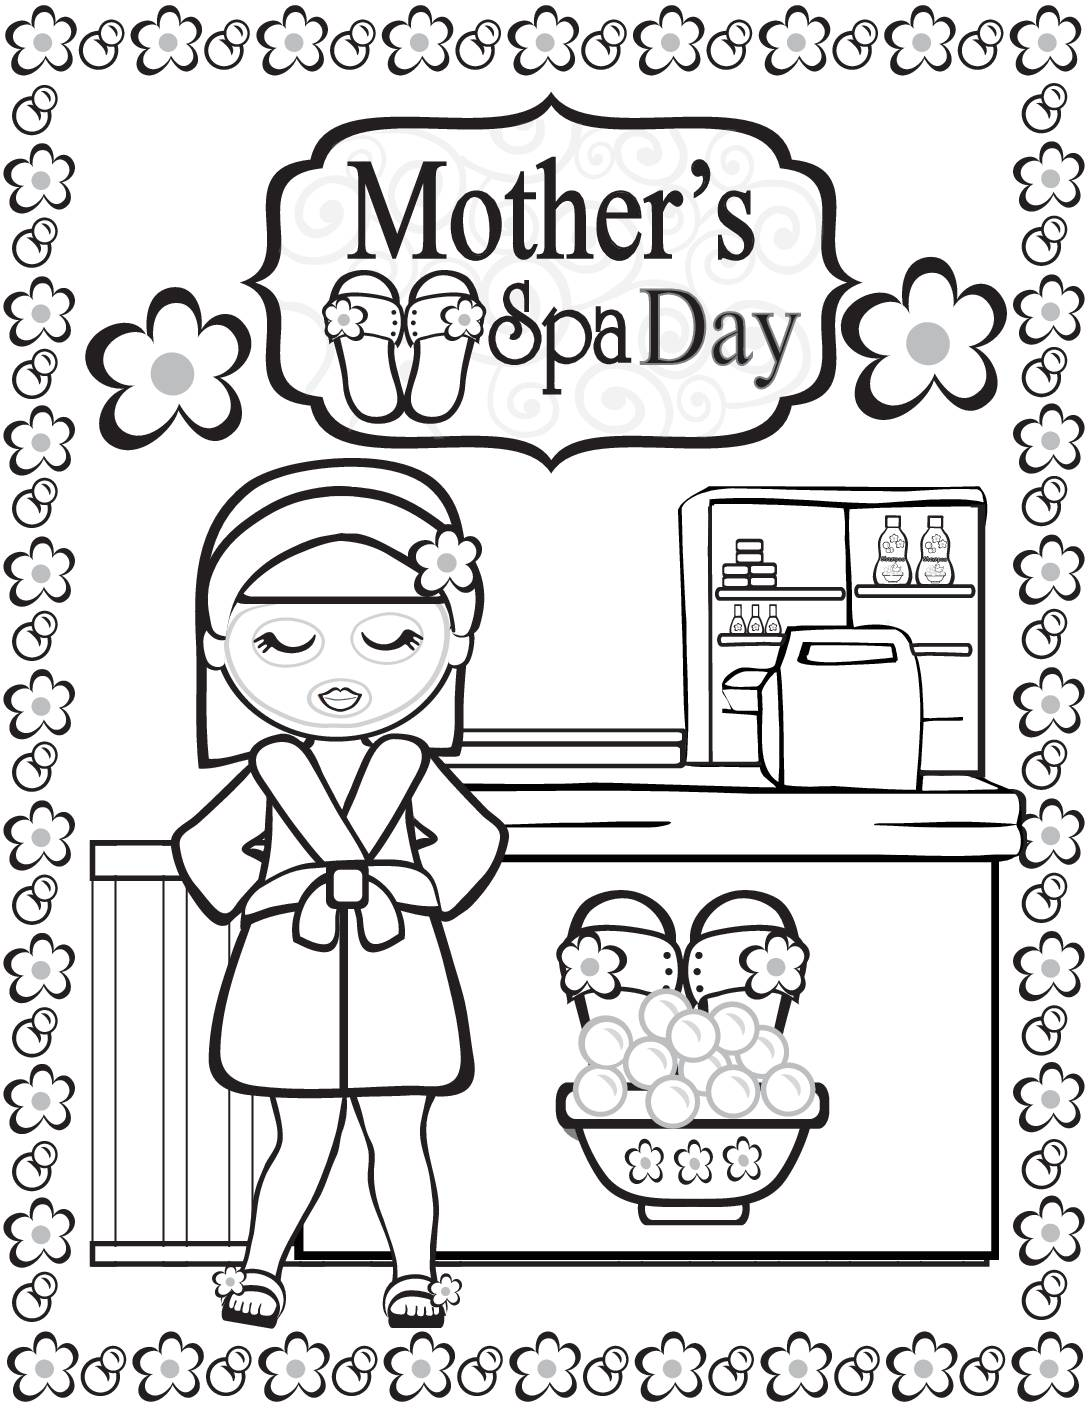 Coloring Page 4 Moms Spa Day